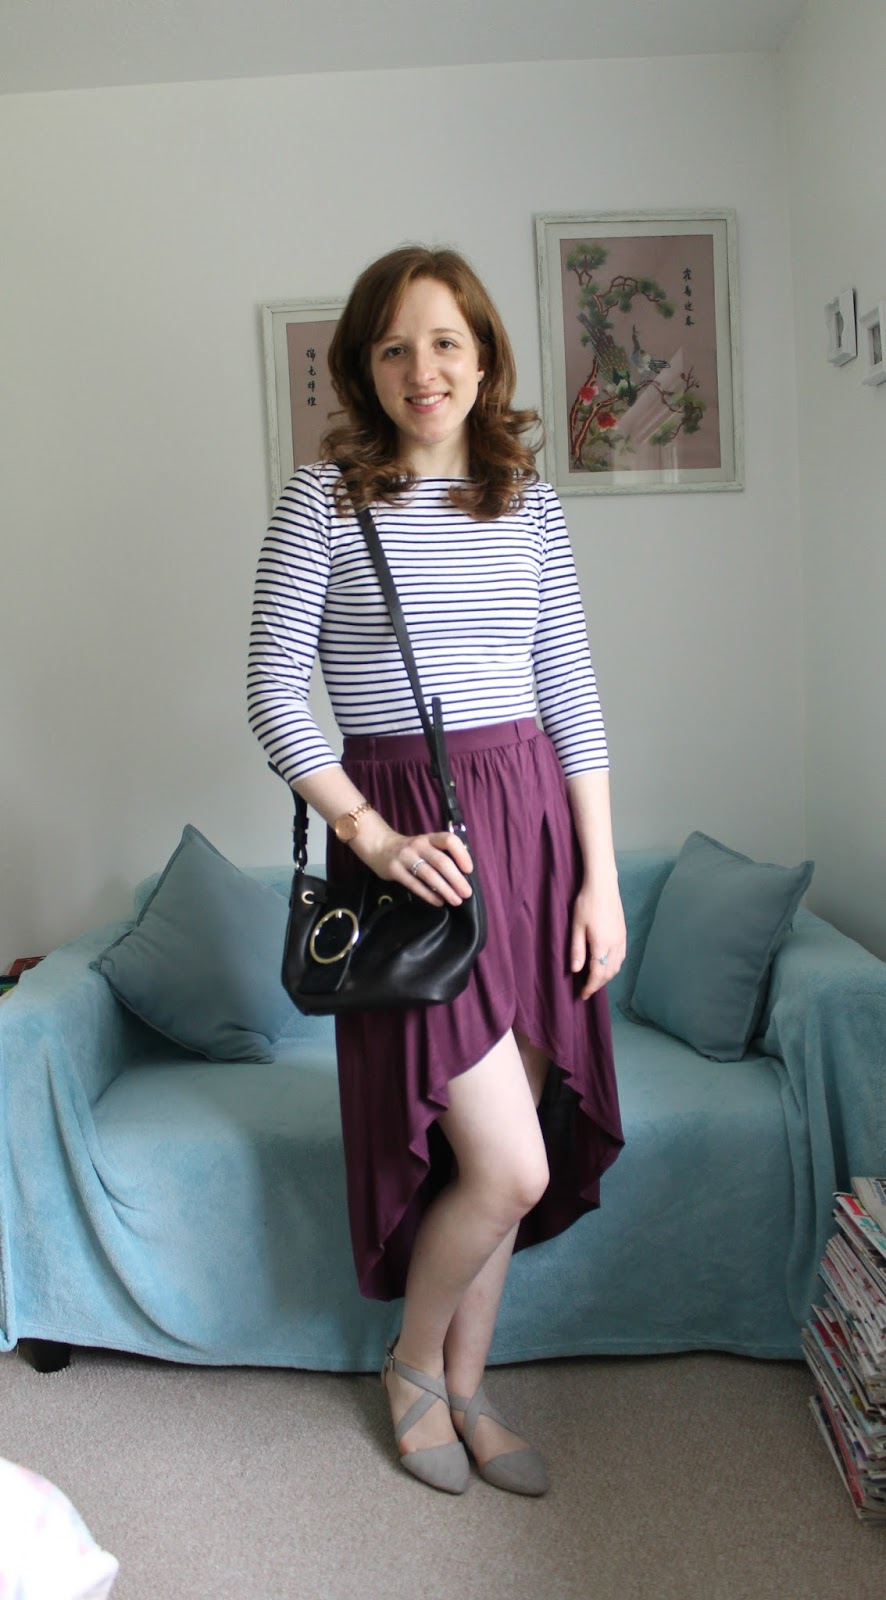 e72d762f65 Everything But The Kitchen Sink: OOTD: Primark Stripes and Maxi Skirt